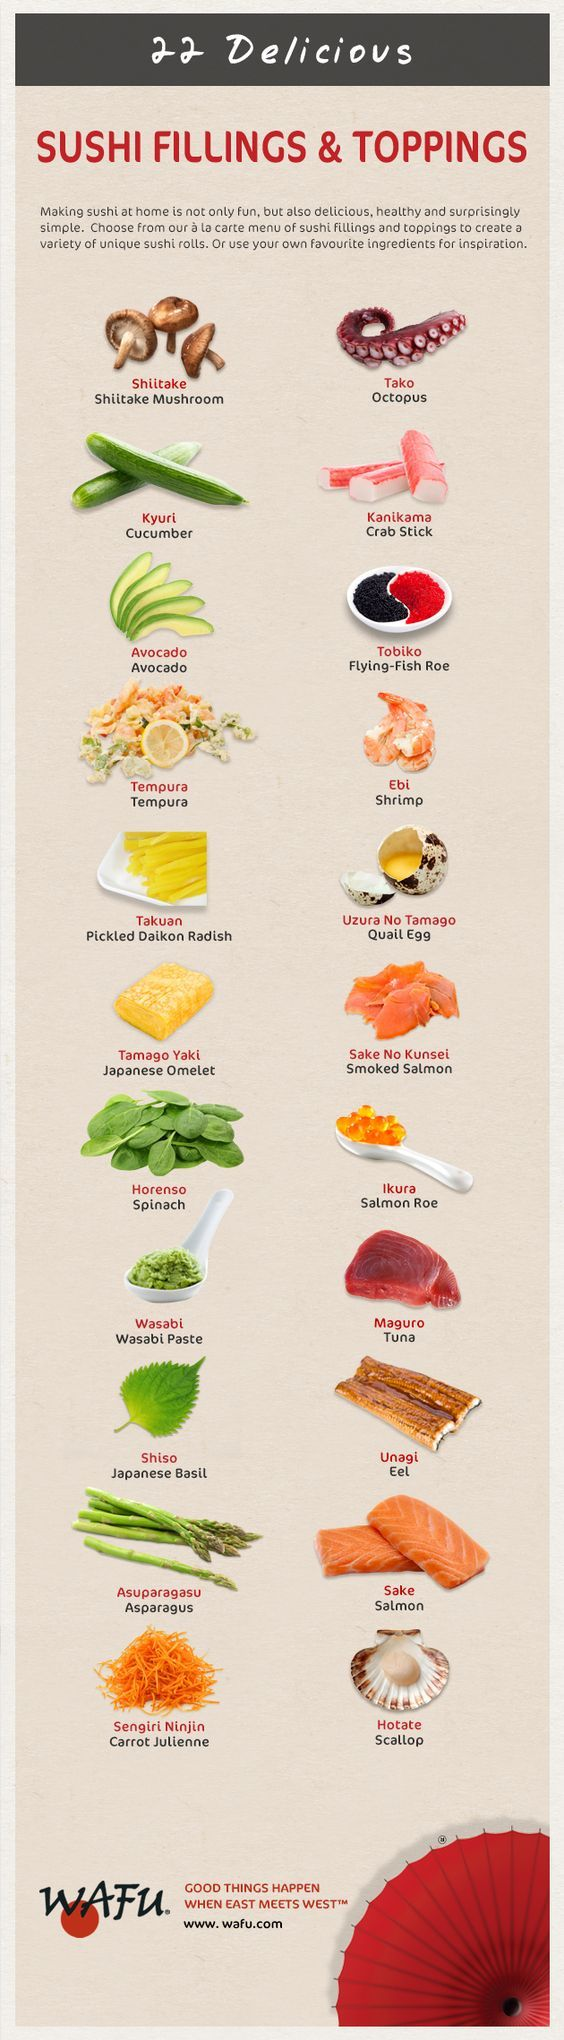 Exaltus produced an infographic for Wafu Inc., on 22 Delicious Sushi Fillings & Toppings. Browse this infographic and get inspired to make sushi at home!: